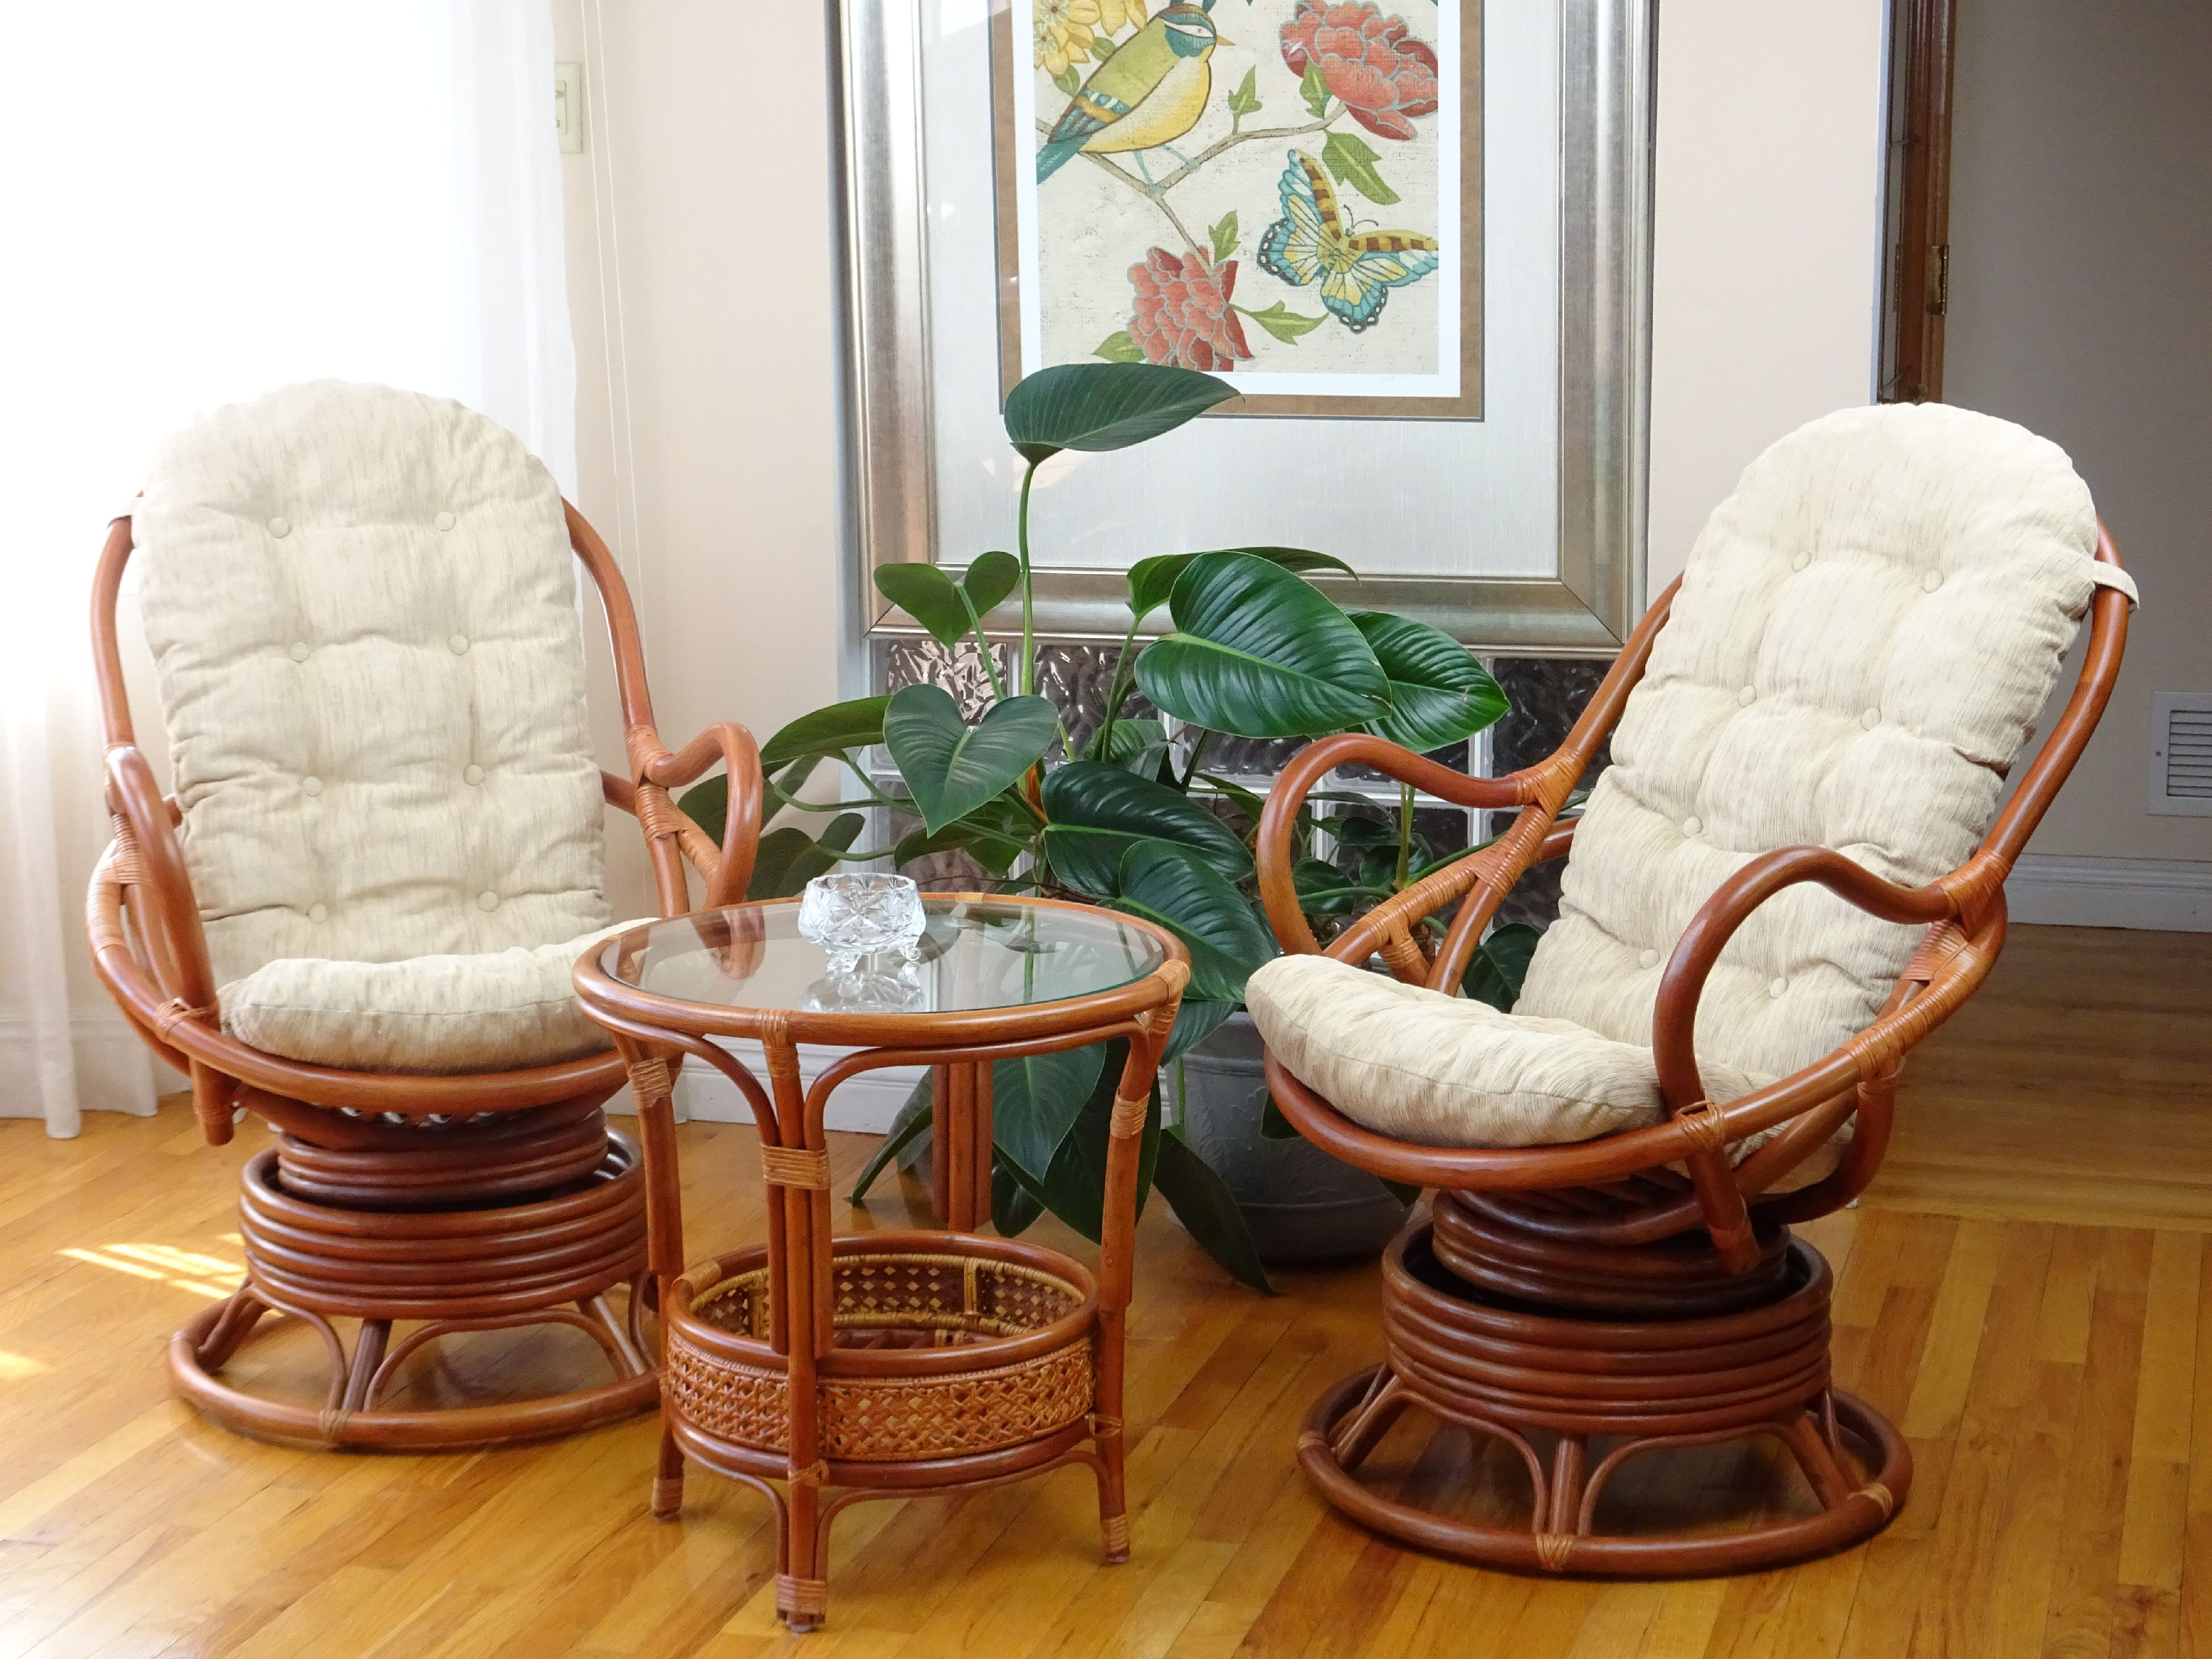 sk new interiors java swivel rocking lounge chair natural handmade rattan wicker with cream cushions, colonial